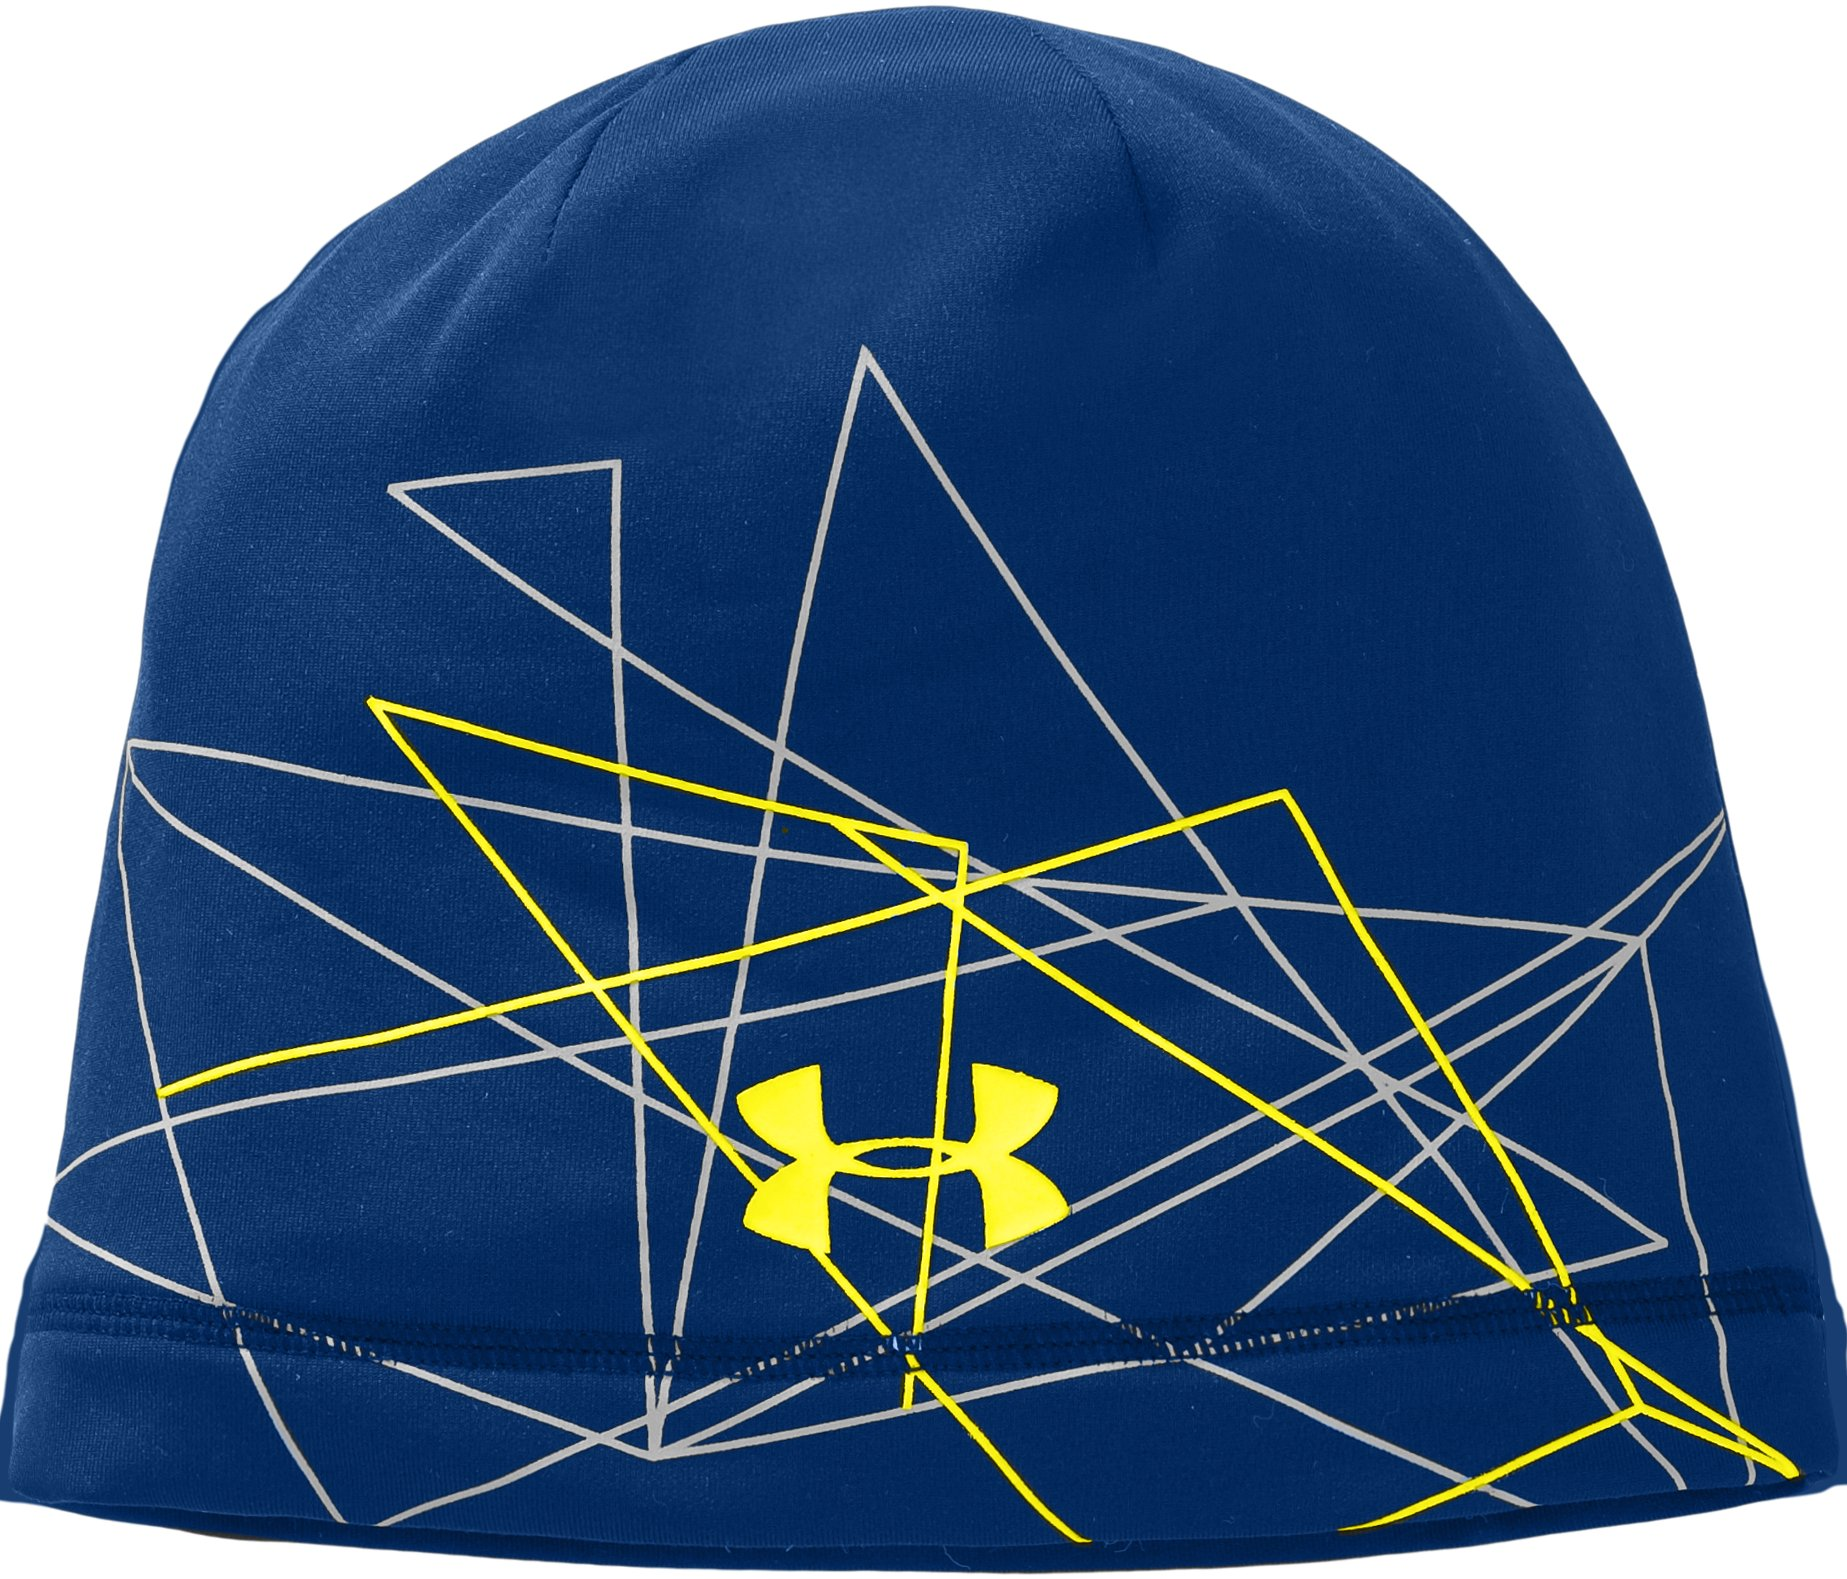 Men's UA Glow-in-the-Dark Running Beanie, Lightning